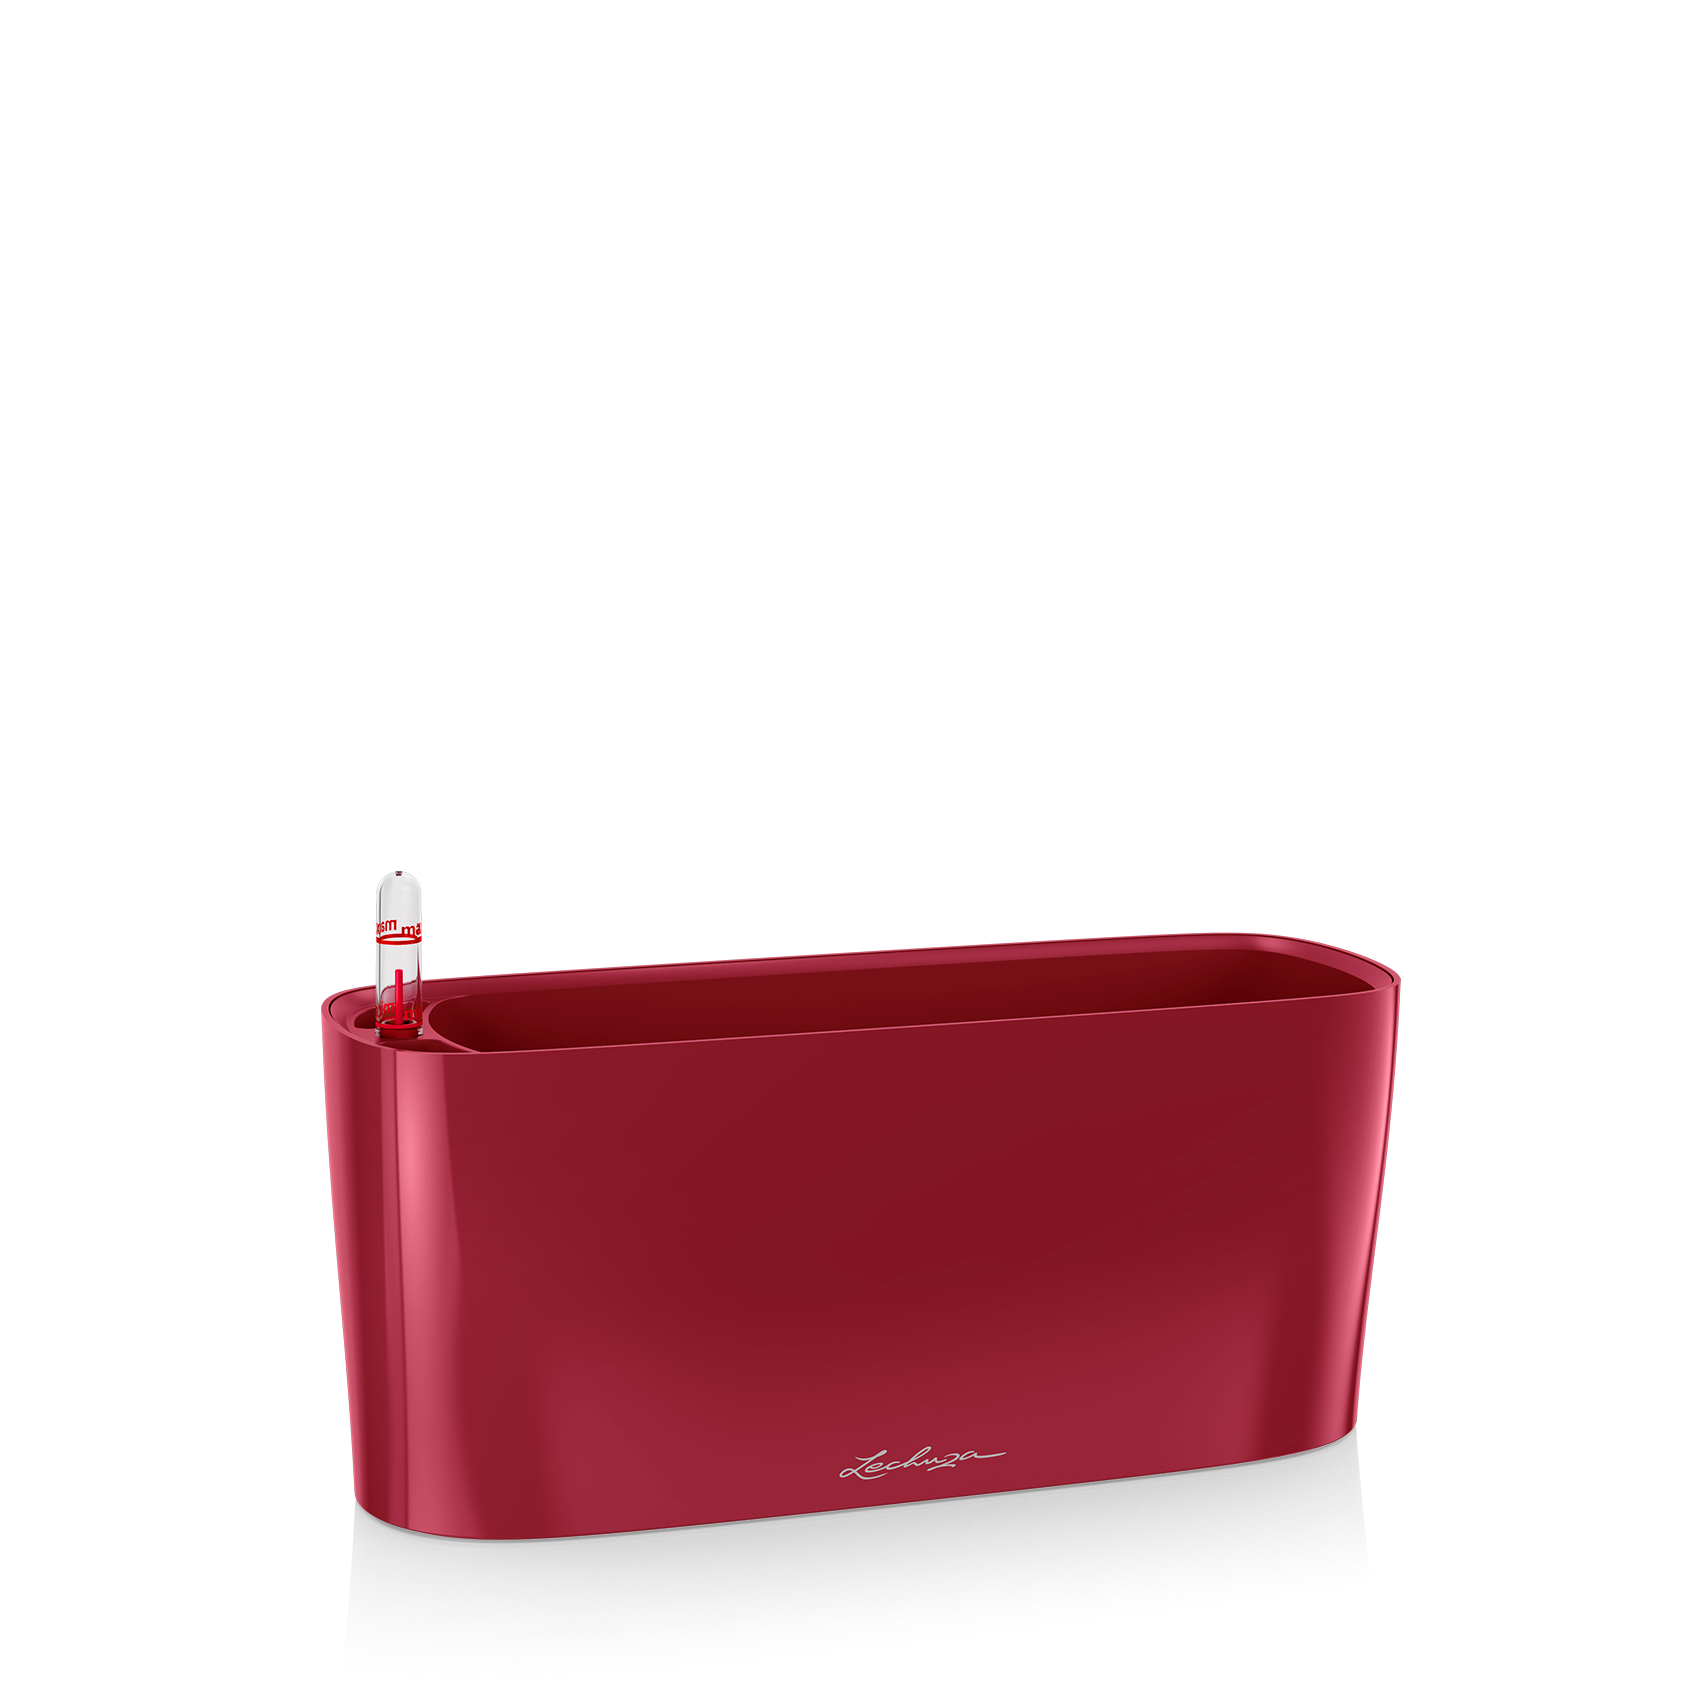 DELTA 10 scarlet red high-gloss